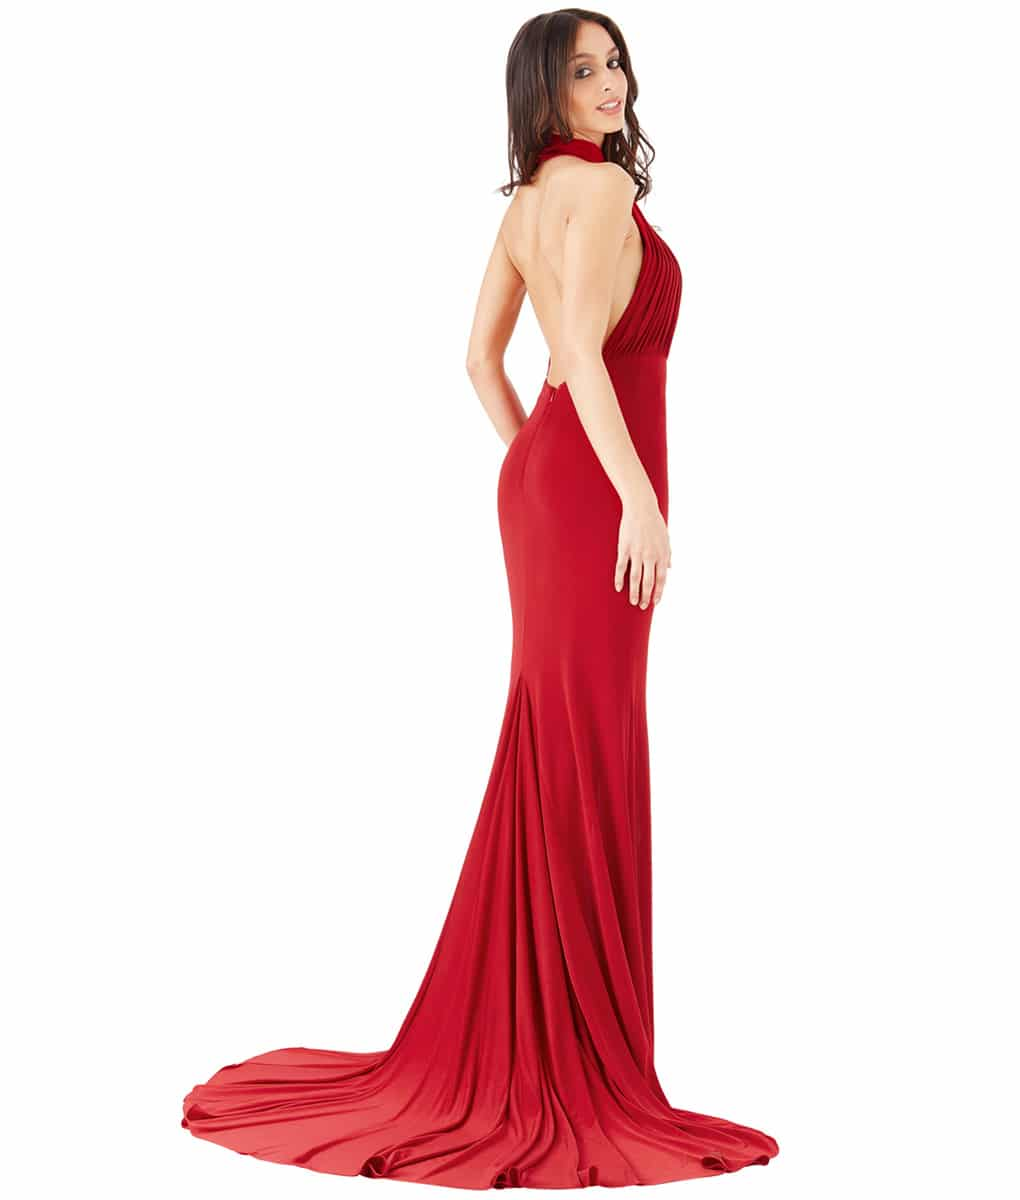 Alila Boutique Red Halter Neck Gown